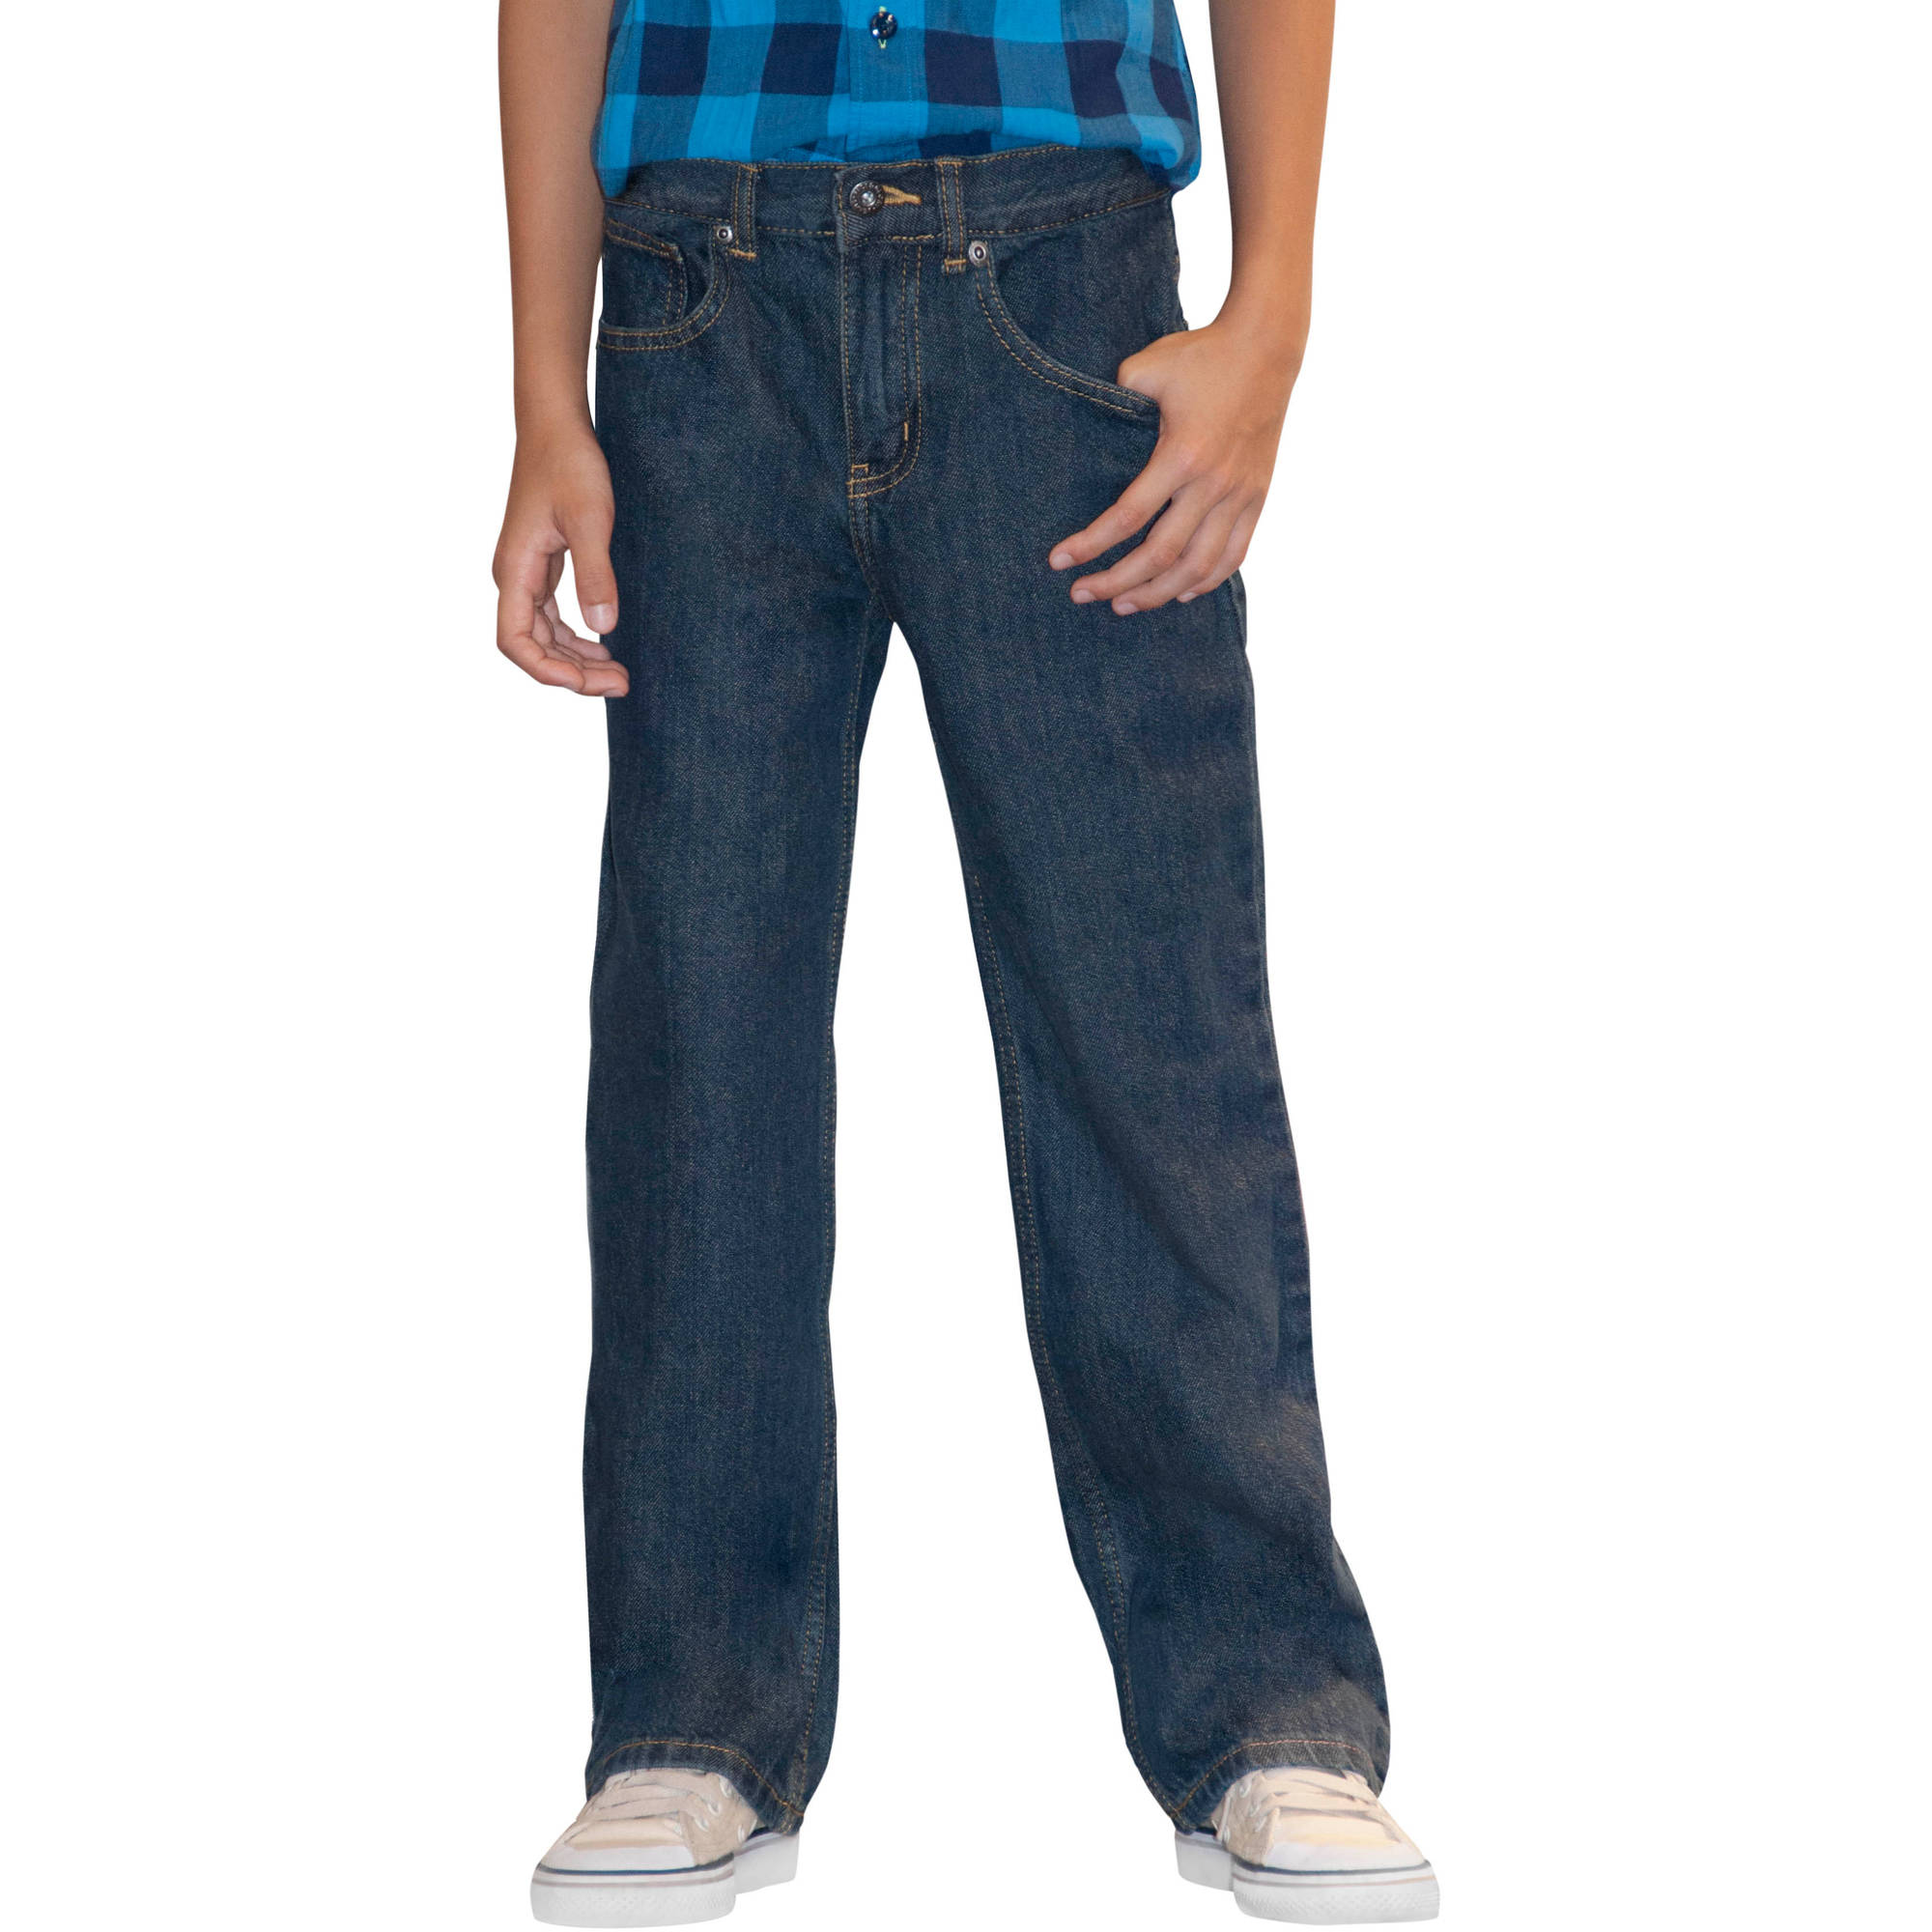 Faded Glory Boys' Relaxed Jean